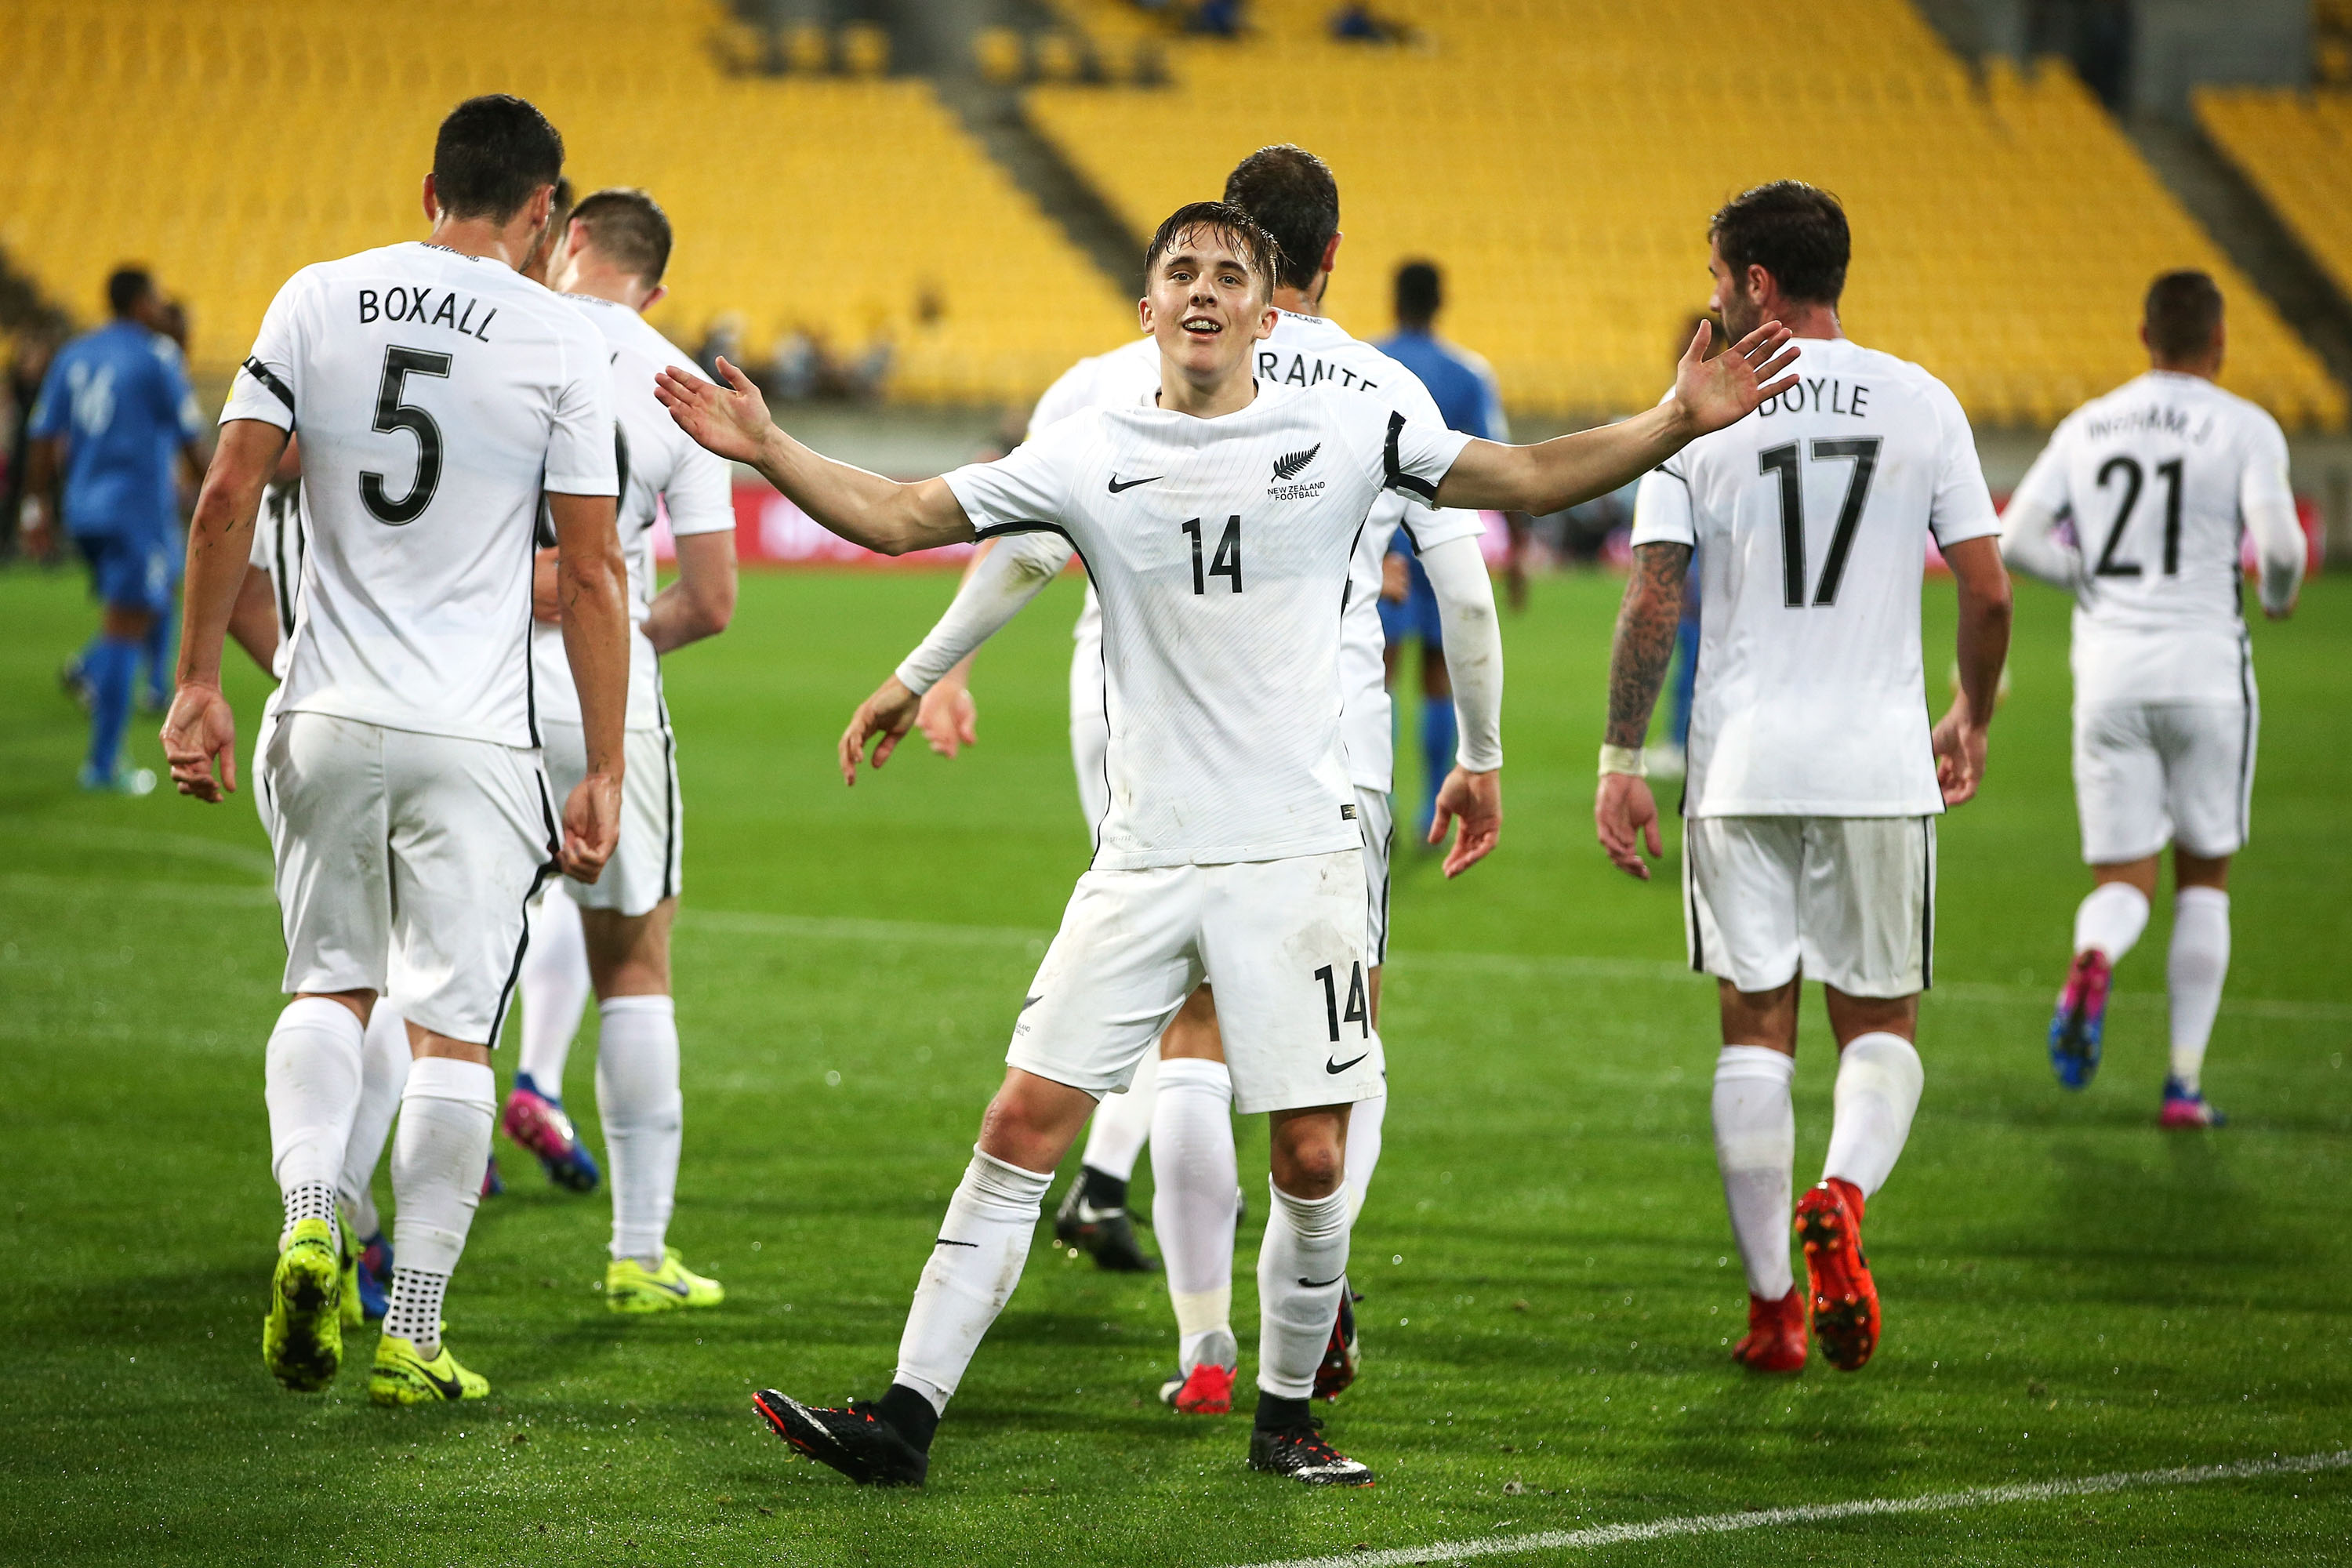 Ryan Thomas of New Zealand celebrates after scoring a goal during the 2018 FIFA World Cup Qualifier